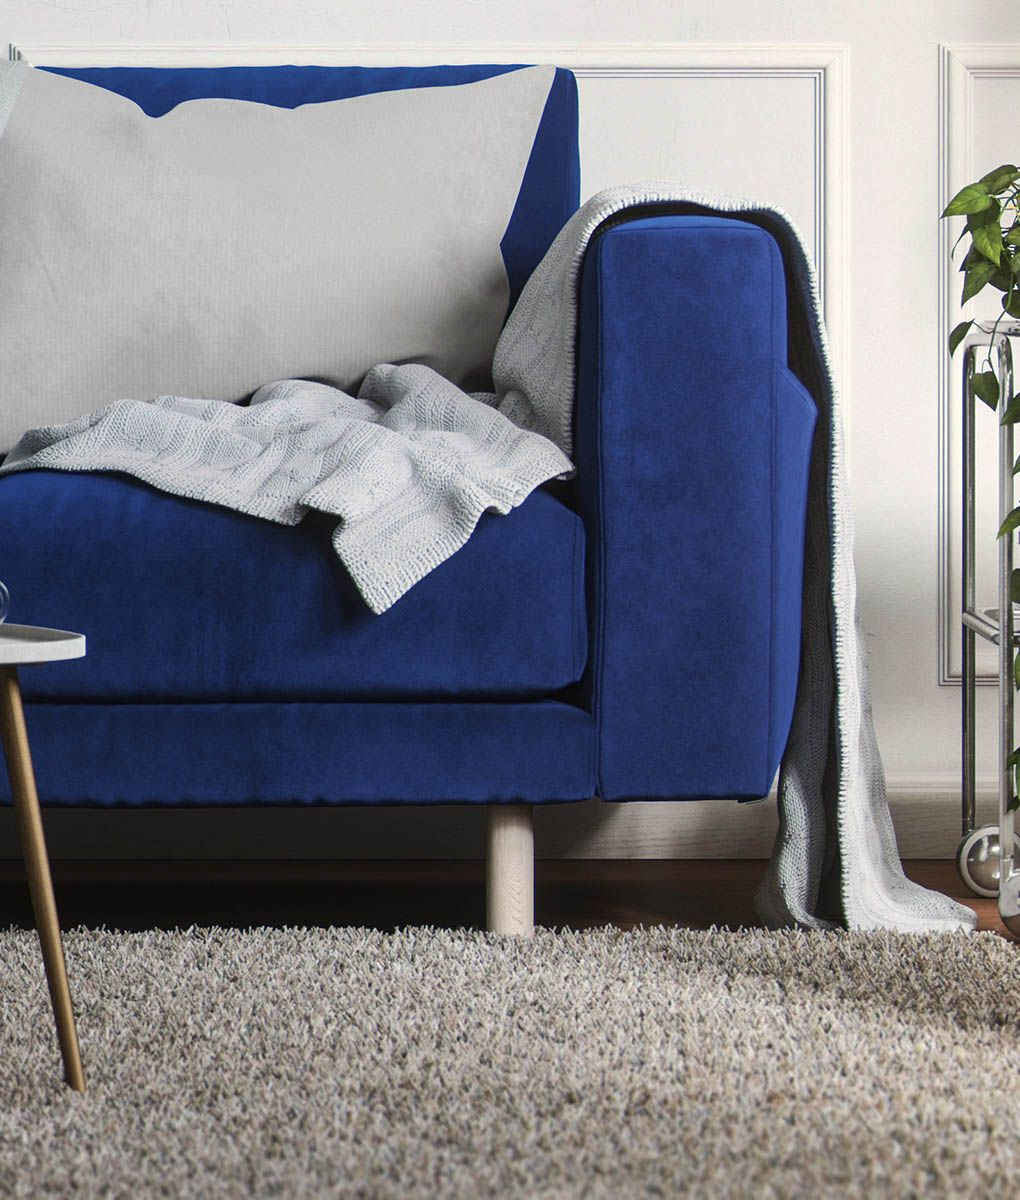 Incredible Ikea Norsborg 3 Seater Sofa Covers Rouge Indigo Velvet Alphanode Cool Chair Designs And Ideas Alphanodeonline